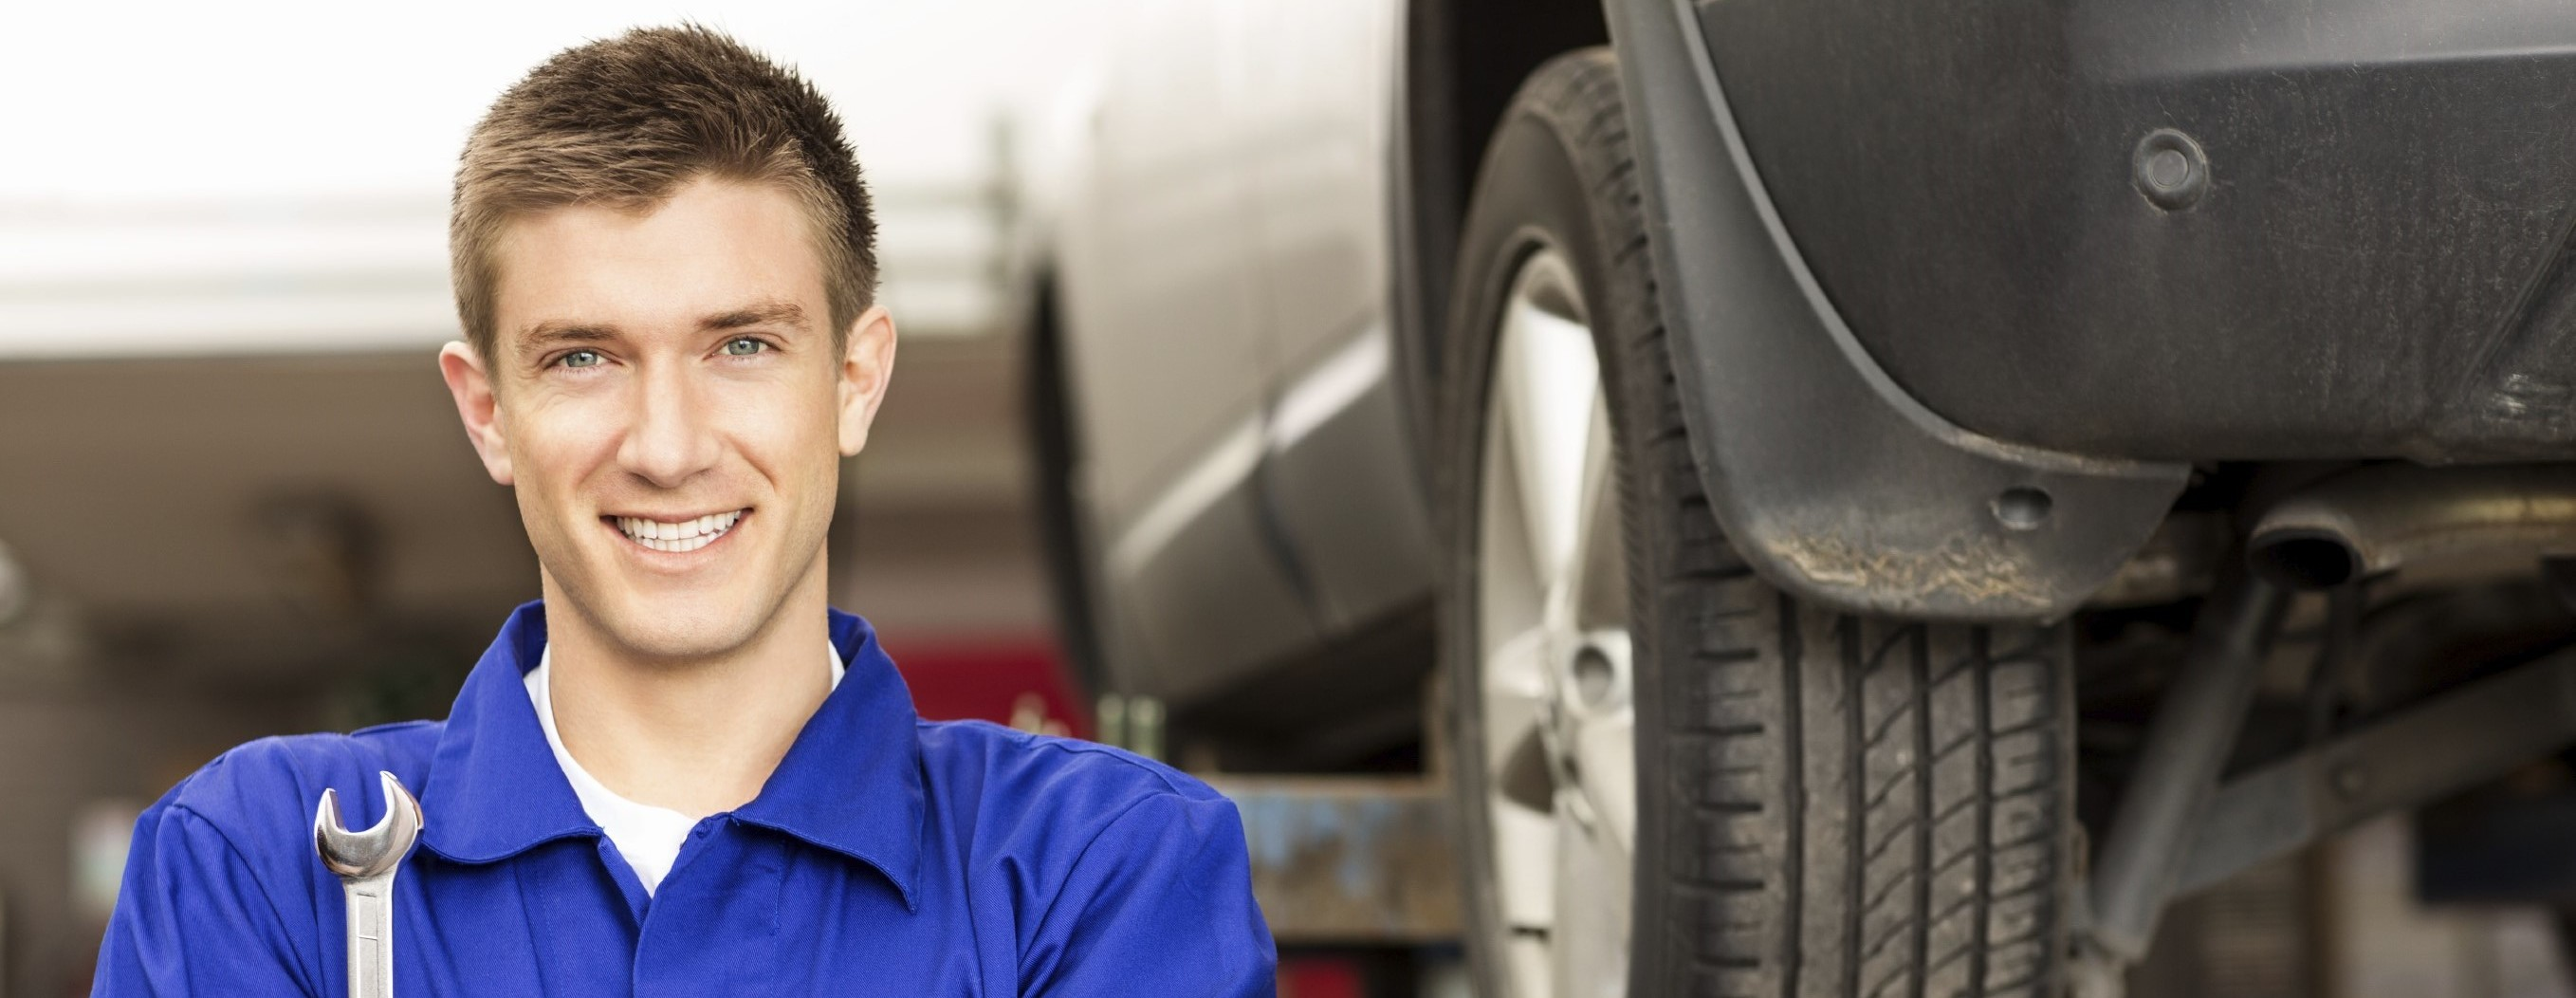 Wheel Alignment Service in Midwest City, OK